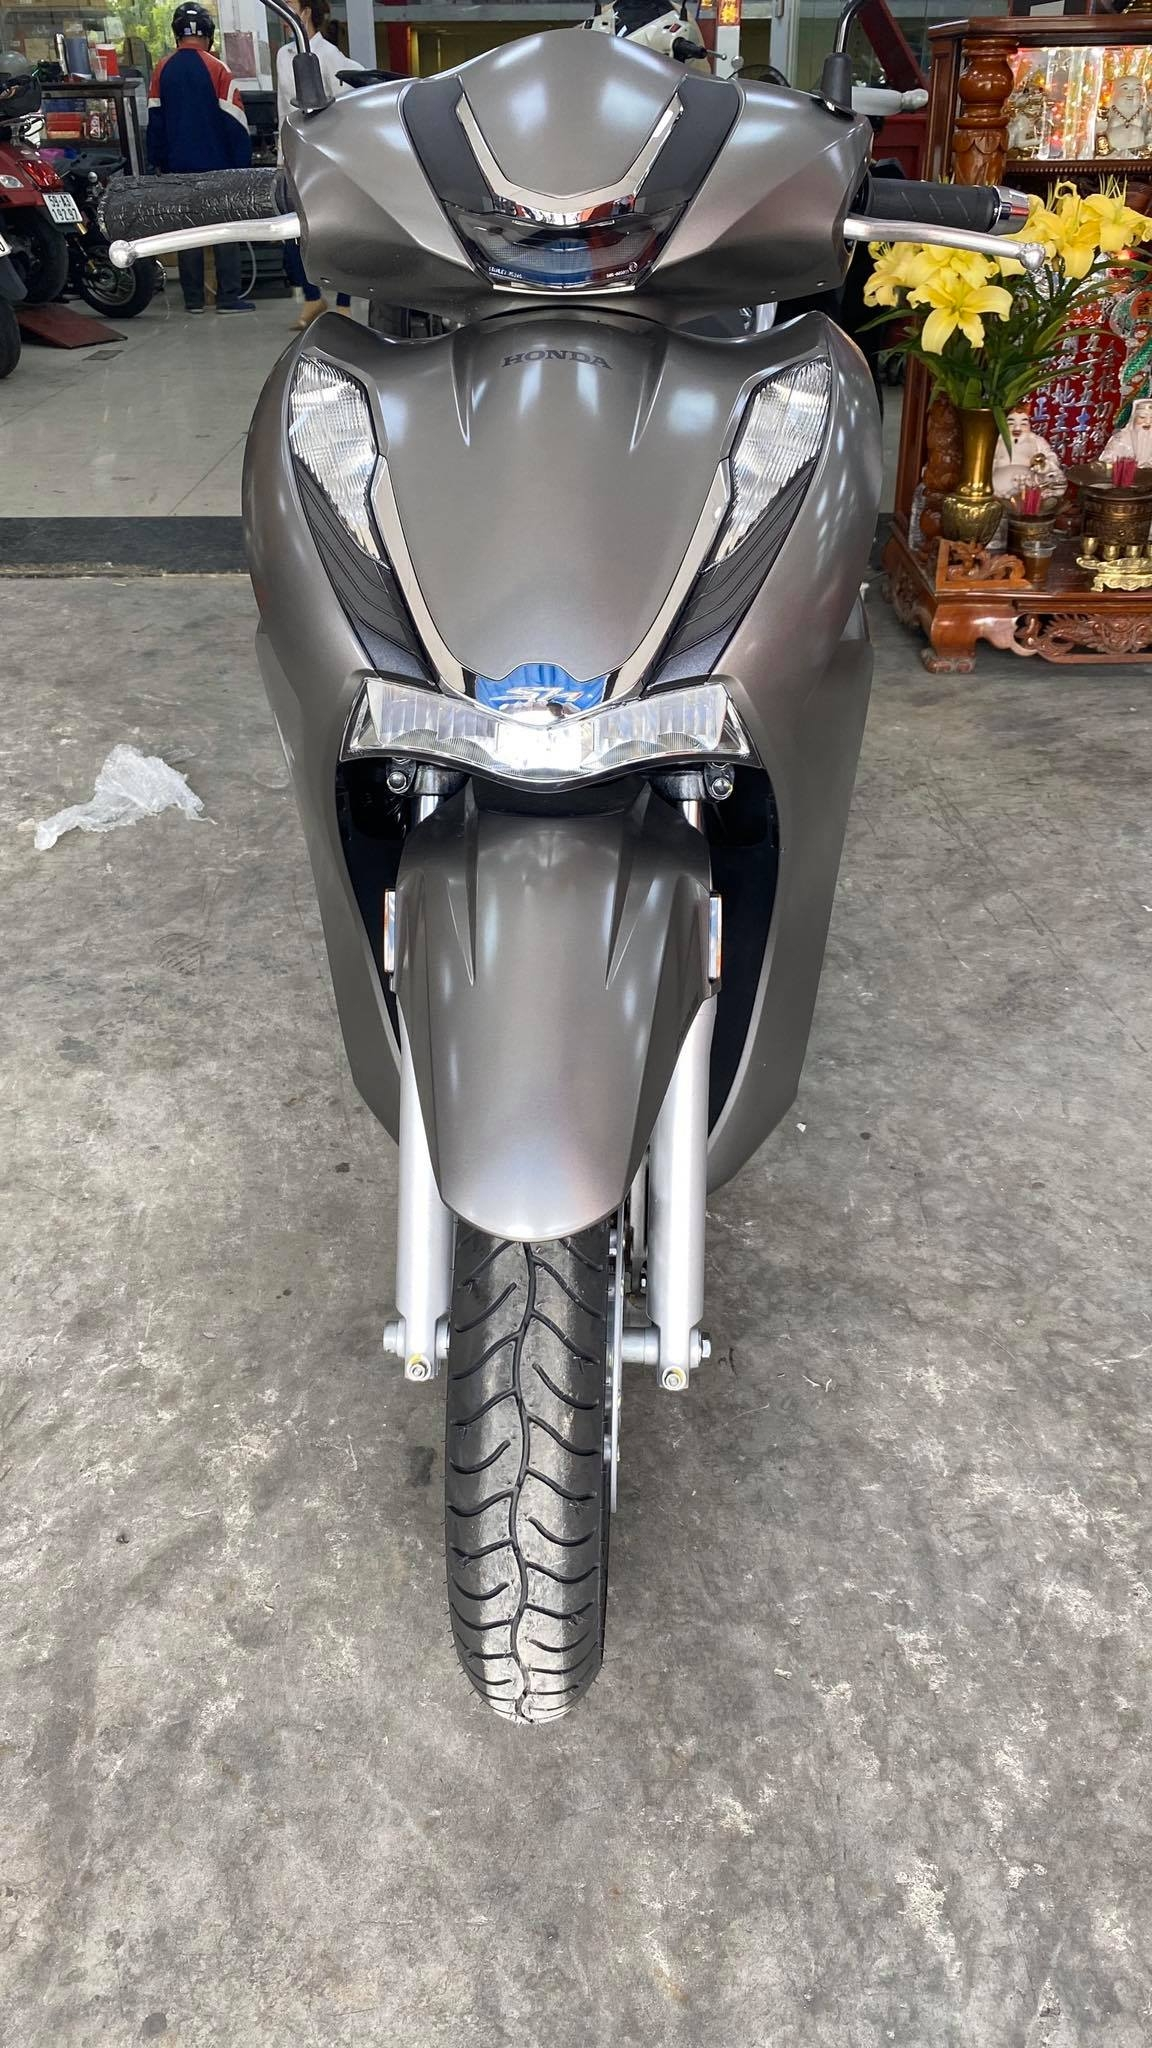 The first SH 350i is available in Vietnam: The scooter is only for real giants 3